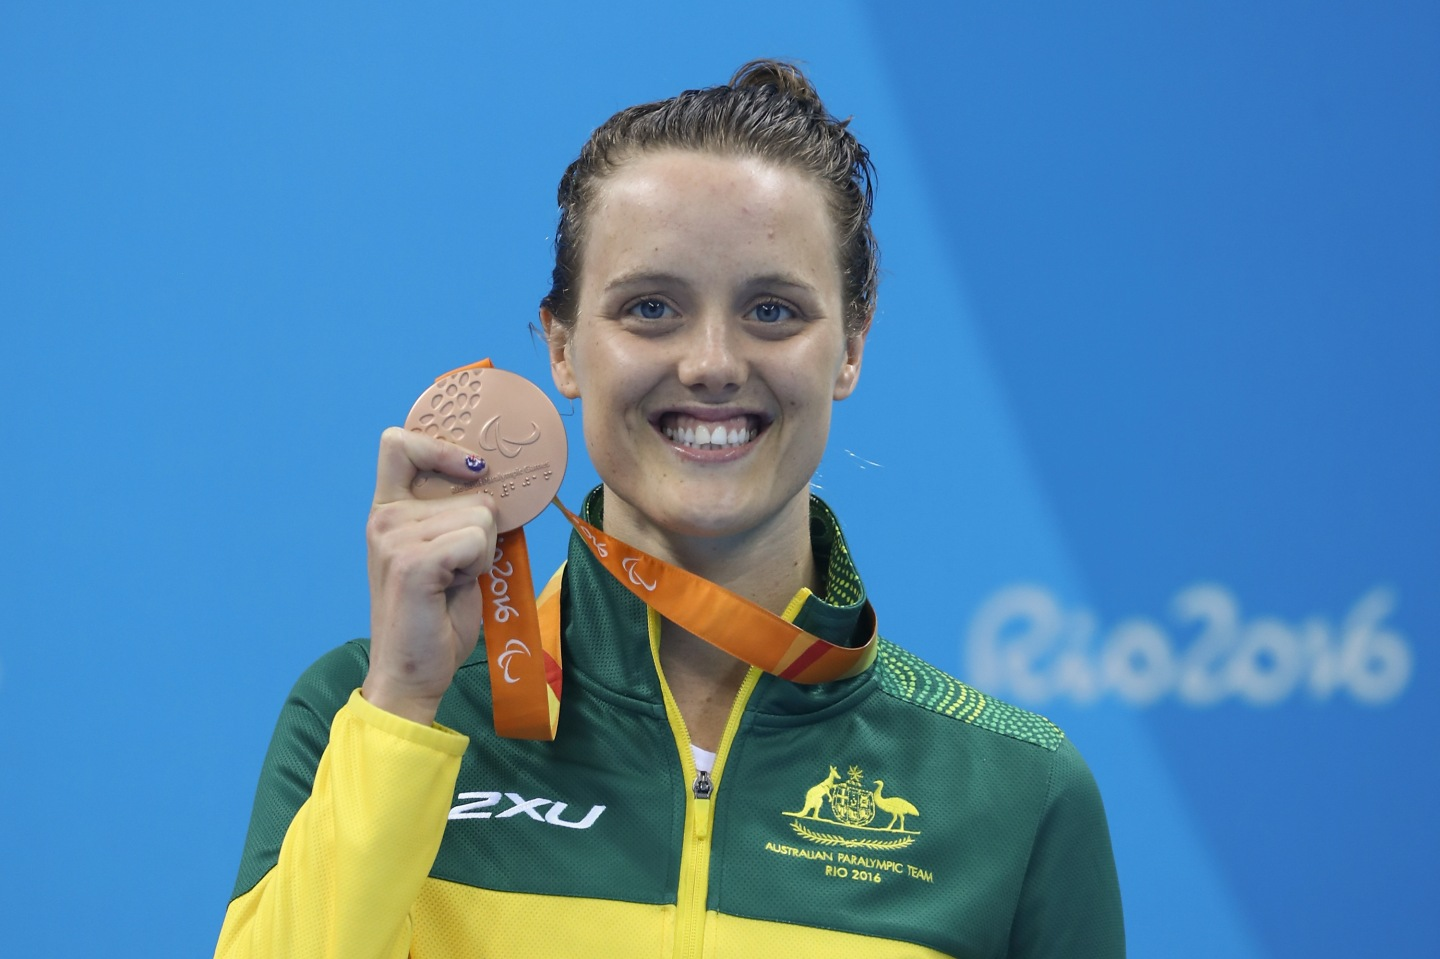 Bronze medalist Ellie Cole of Australia celebrates on the podium at the medal ceremony for the Womens 100m Freestyle - S9 Final during day 5 of the Rio 2016 Paralympic Games - Getty Images